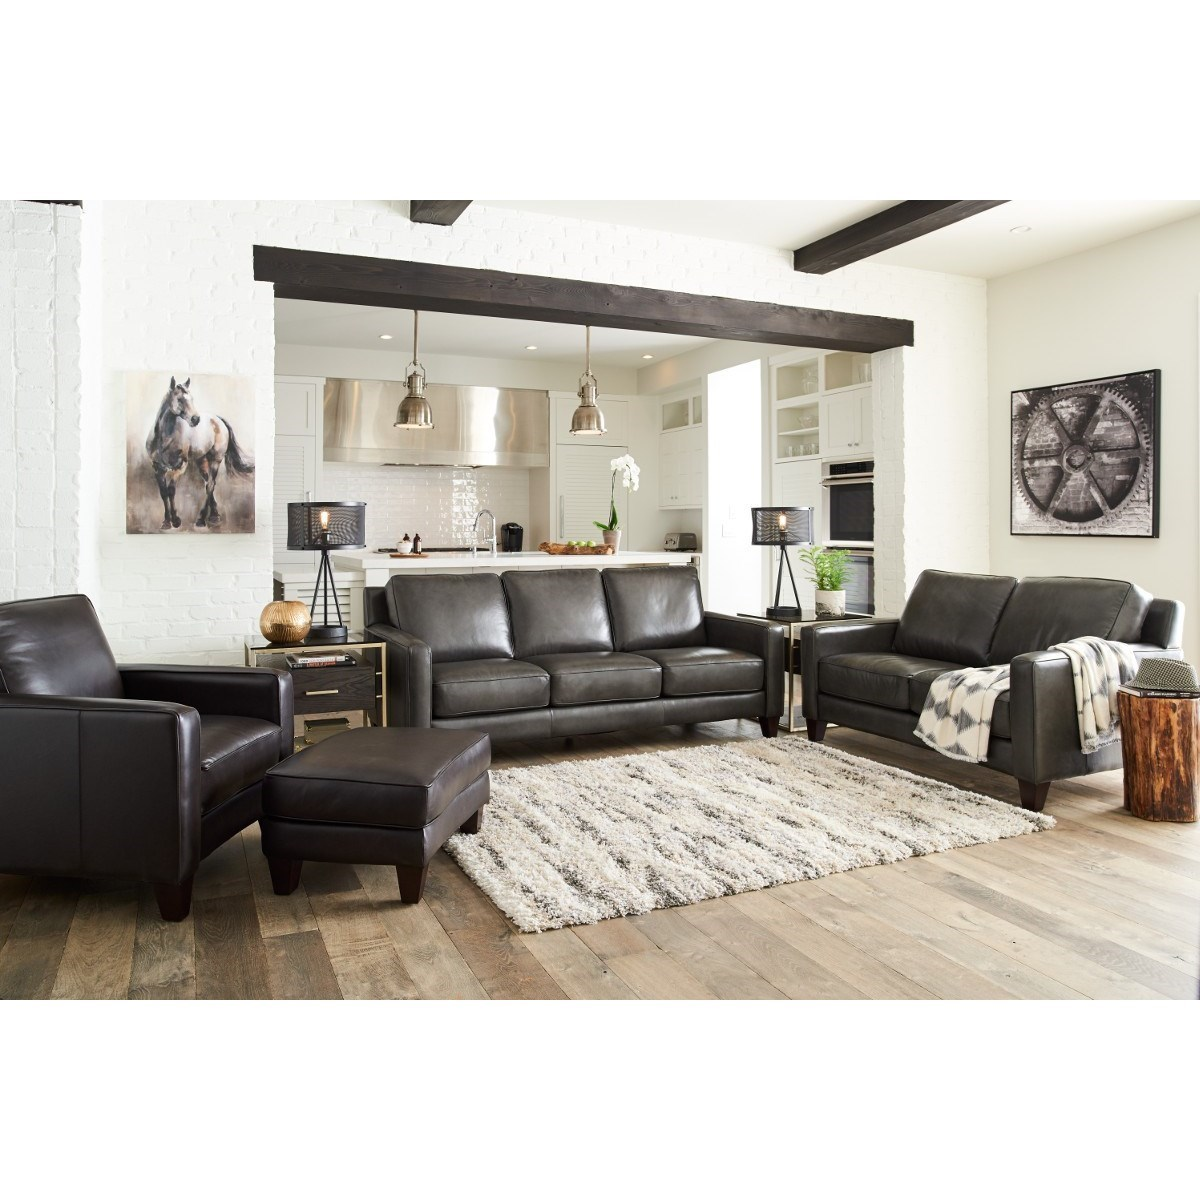 Archer Living Room Group by La-Z-Boy at Home Furnishings Direct